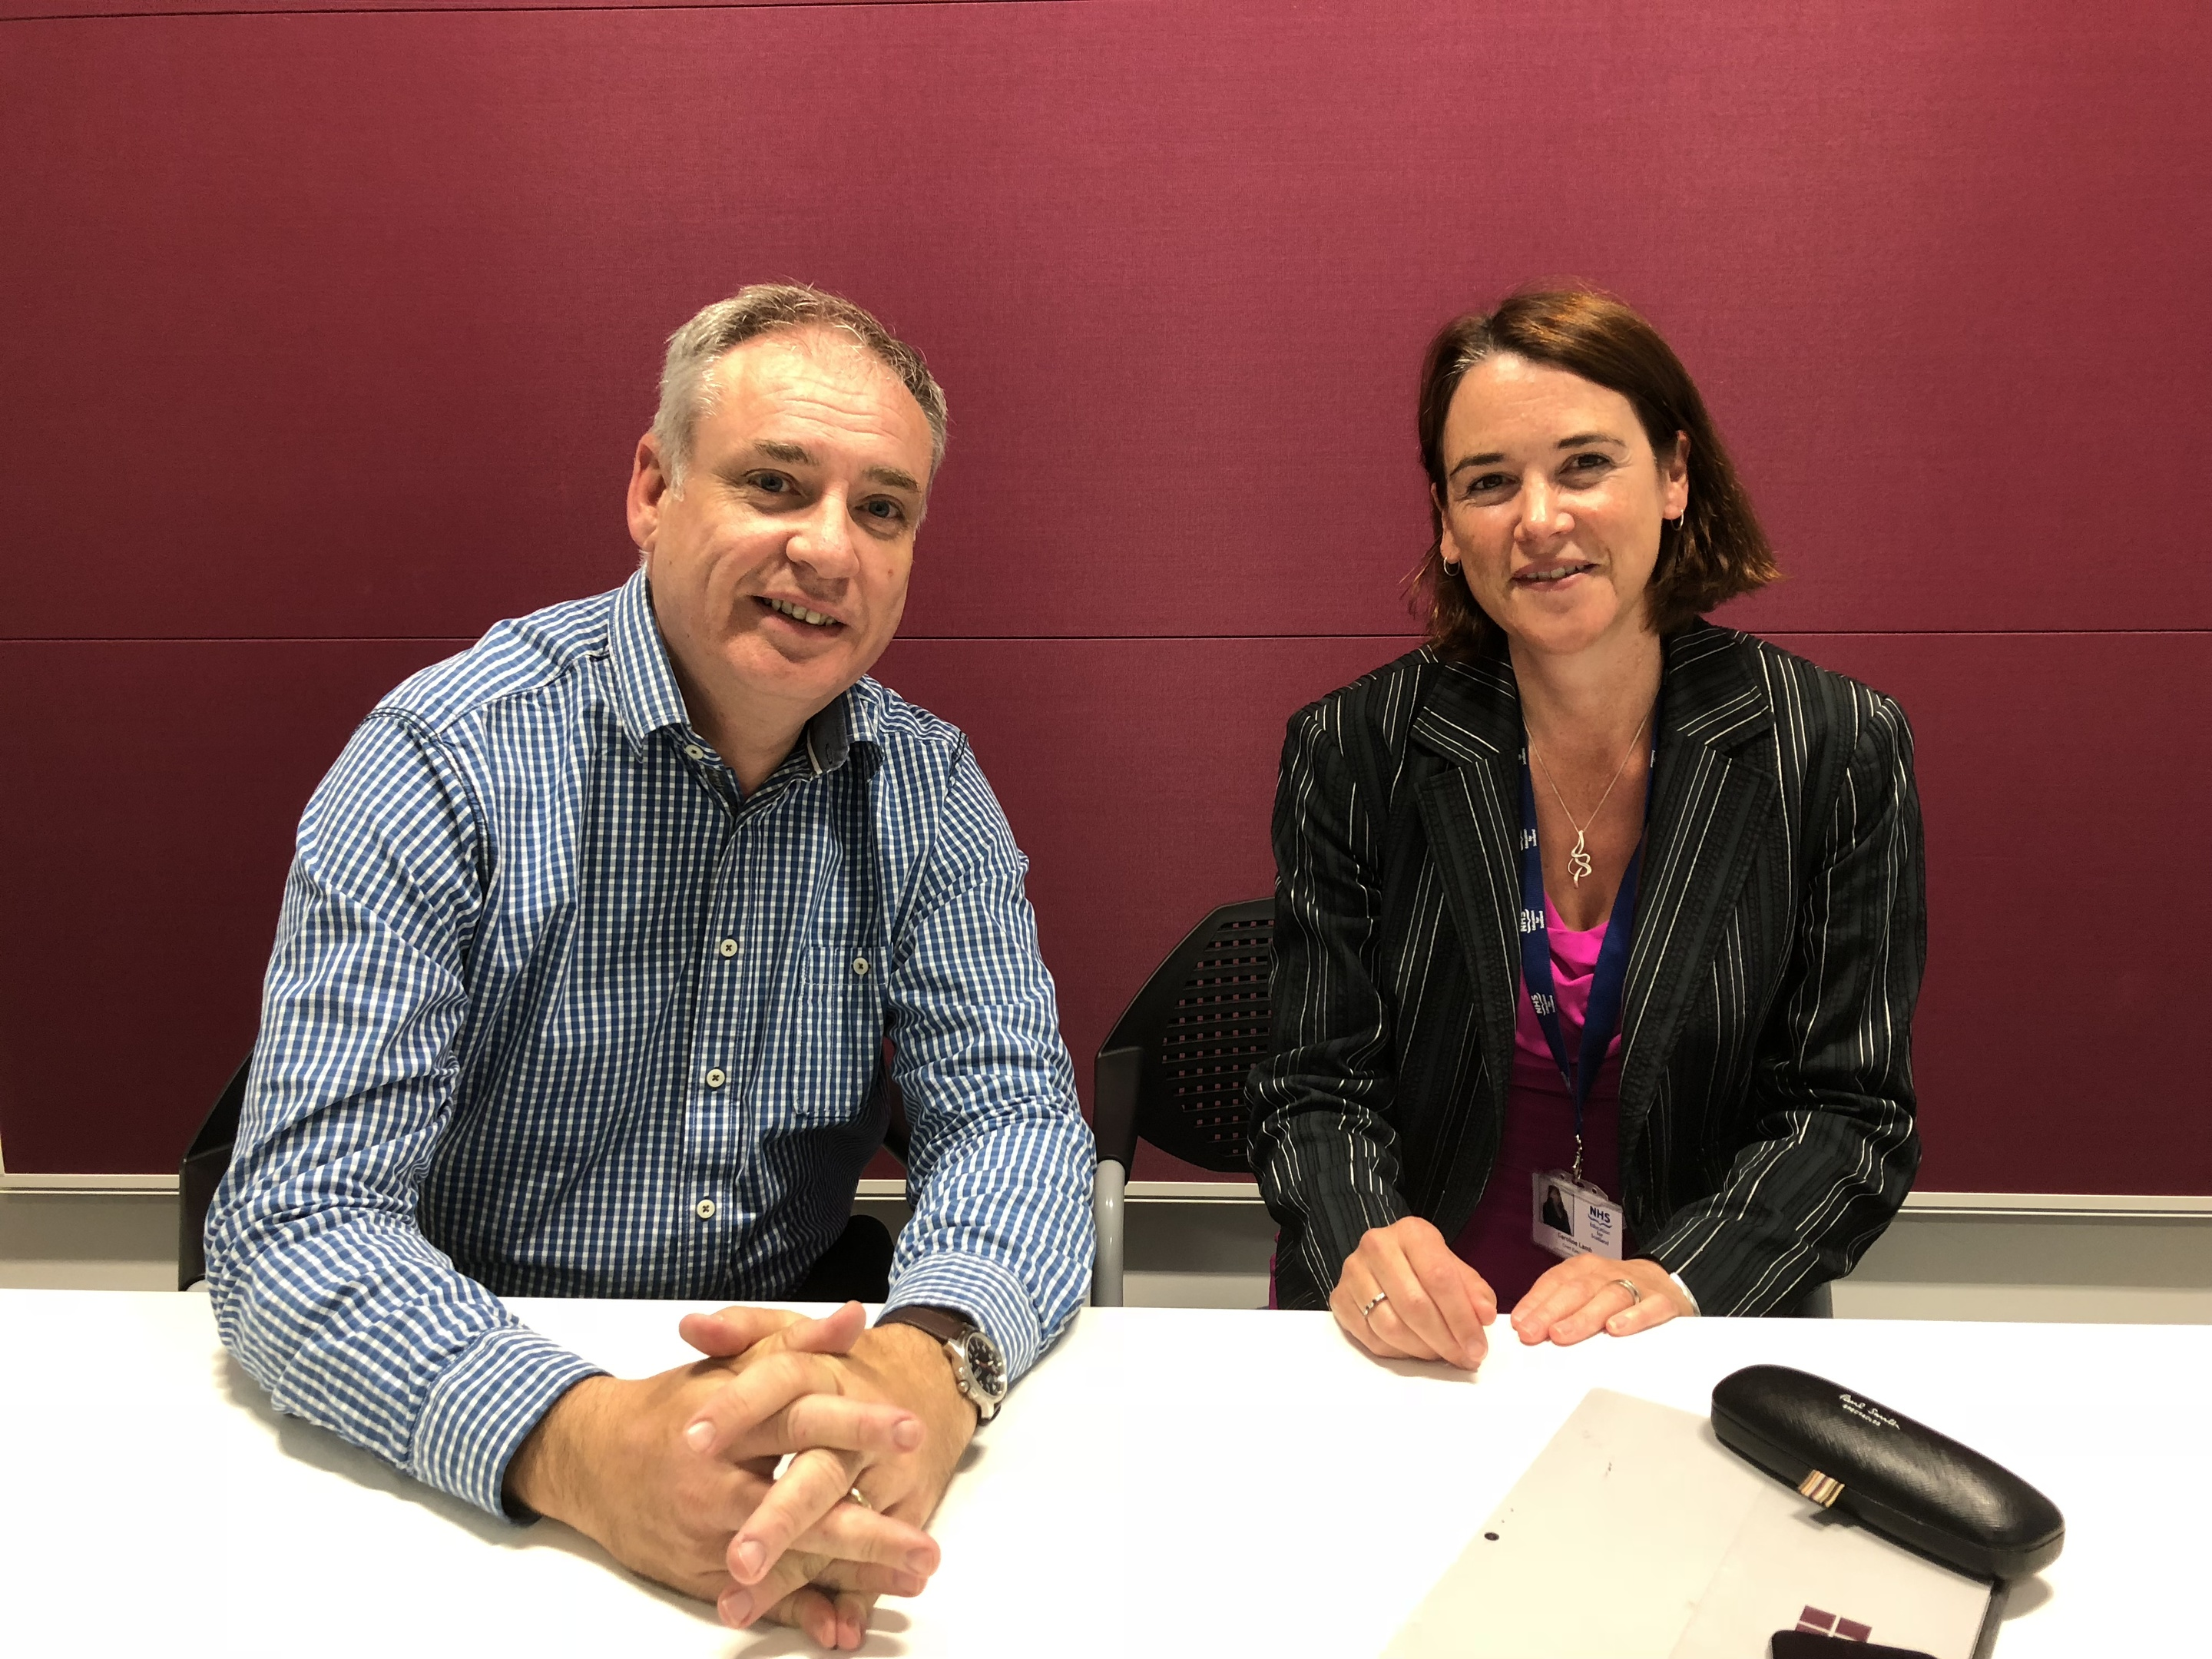 Richard Lochhead met with Caroline Lamb, the chief executive of NHS Education for Scotland (NES).